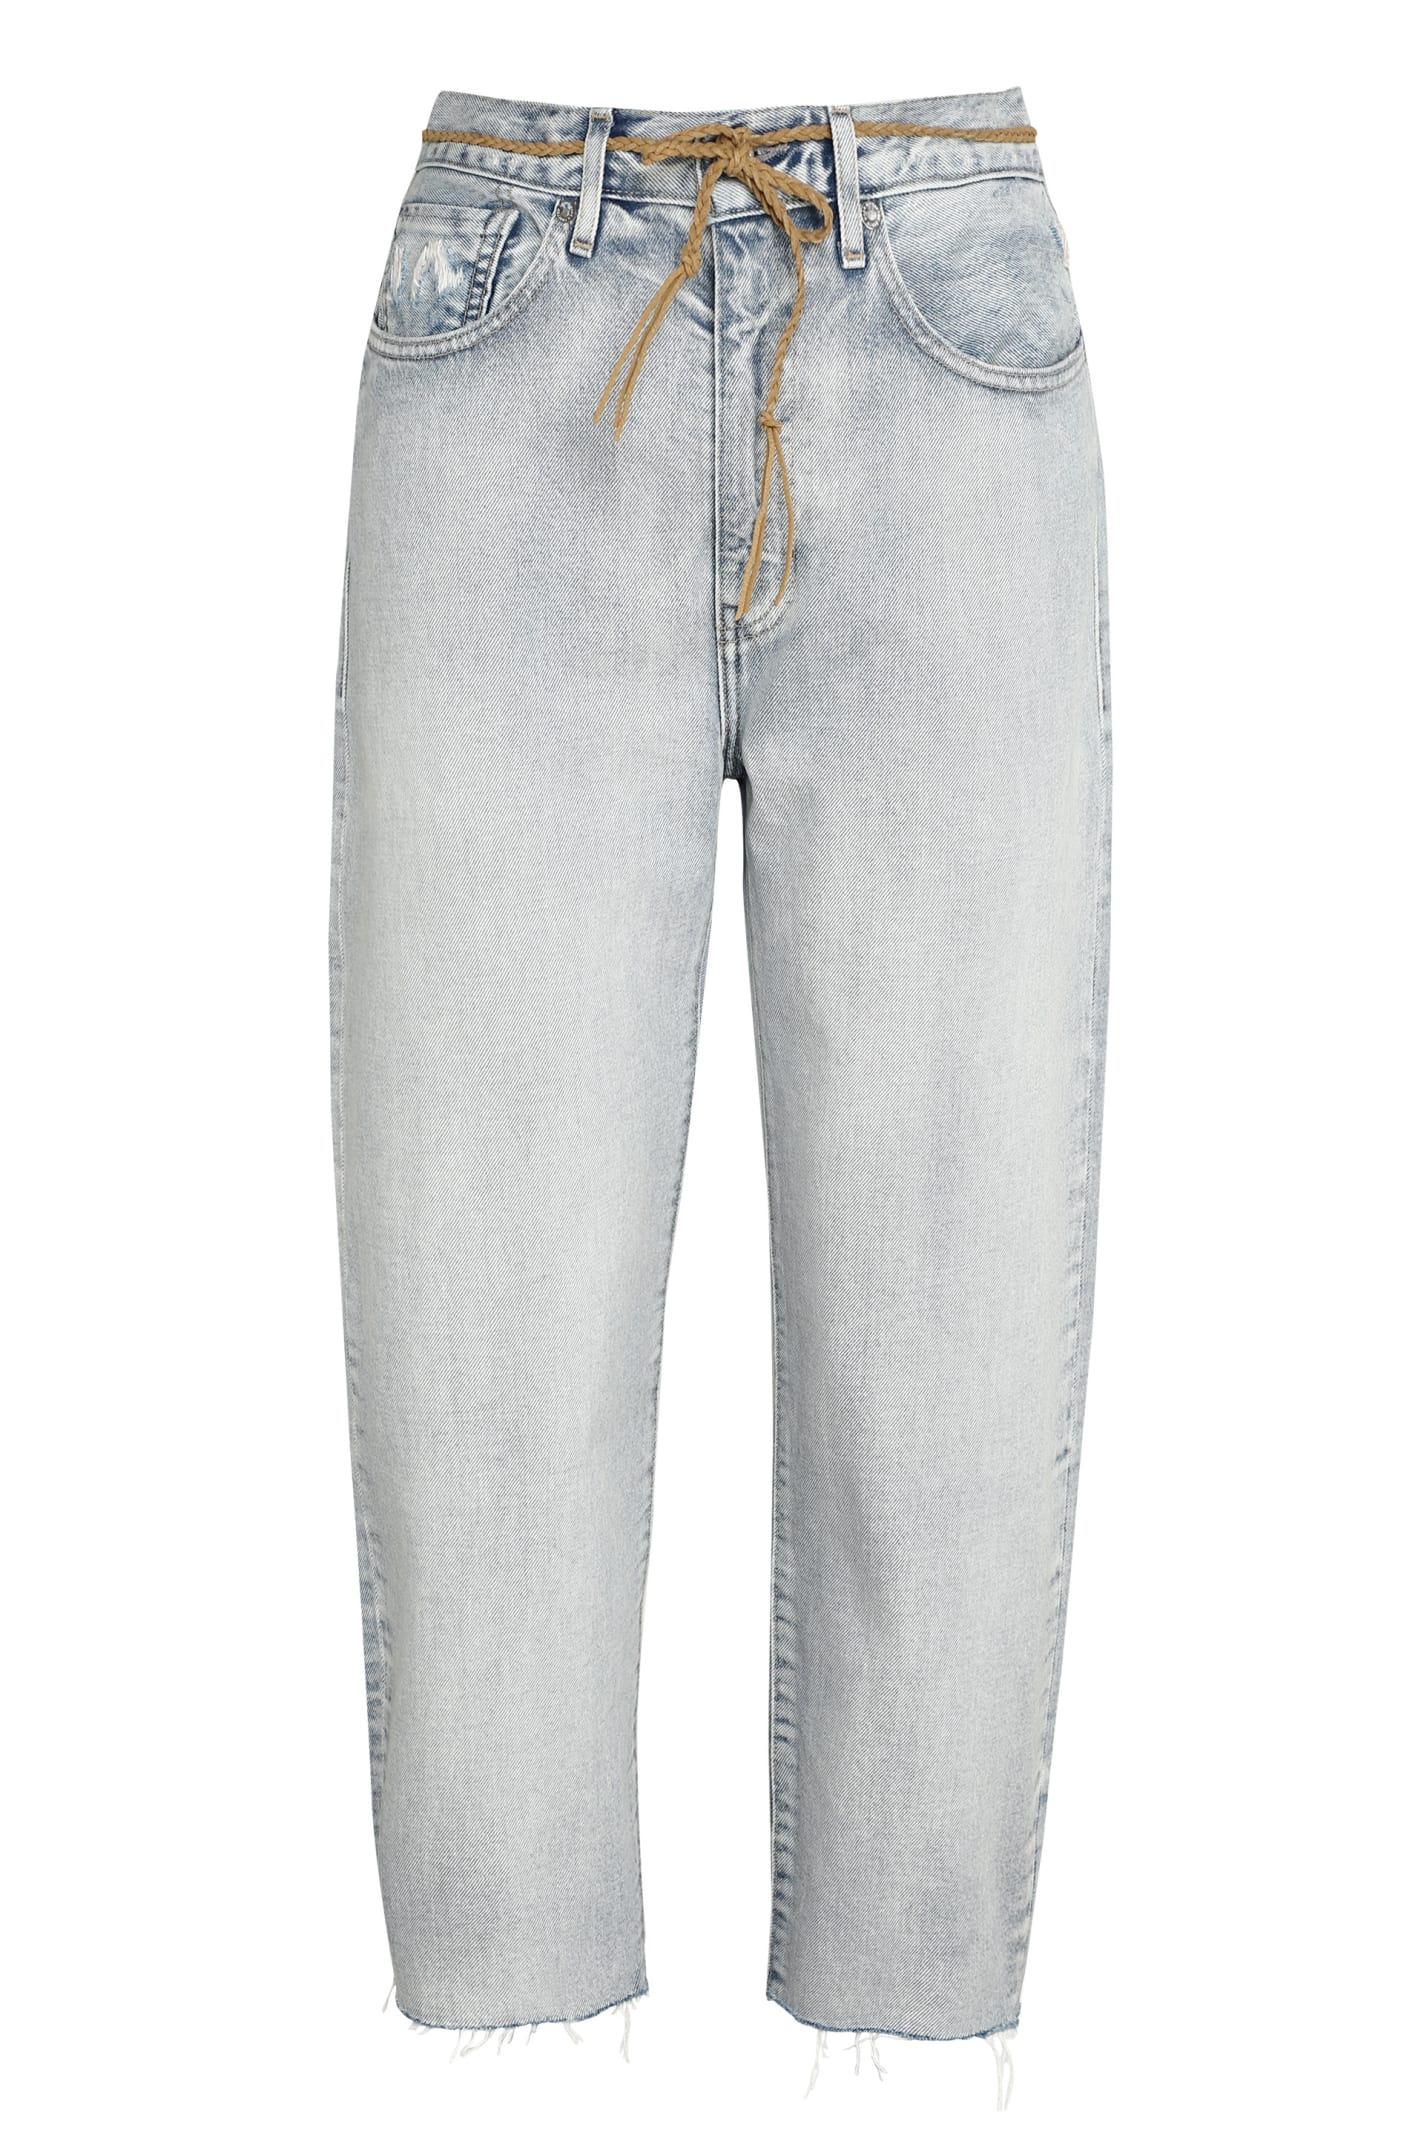 Levis Relaxed Fit Jeans